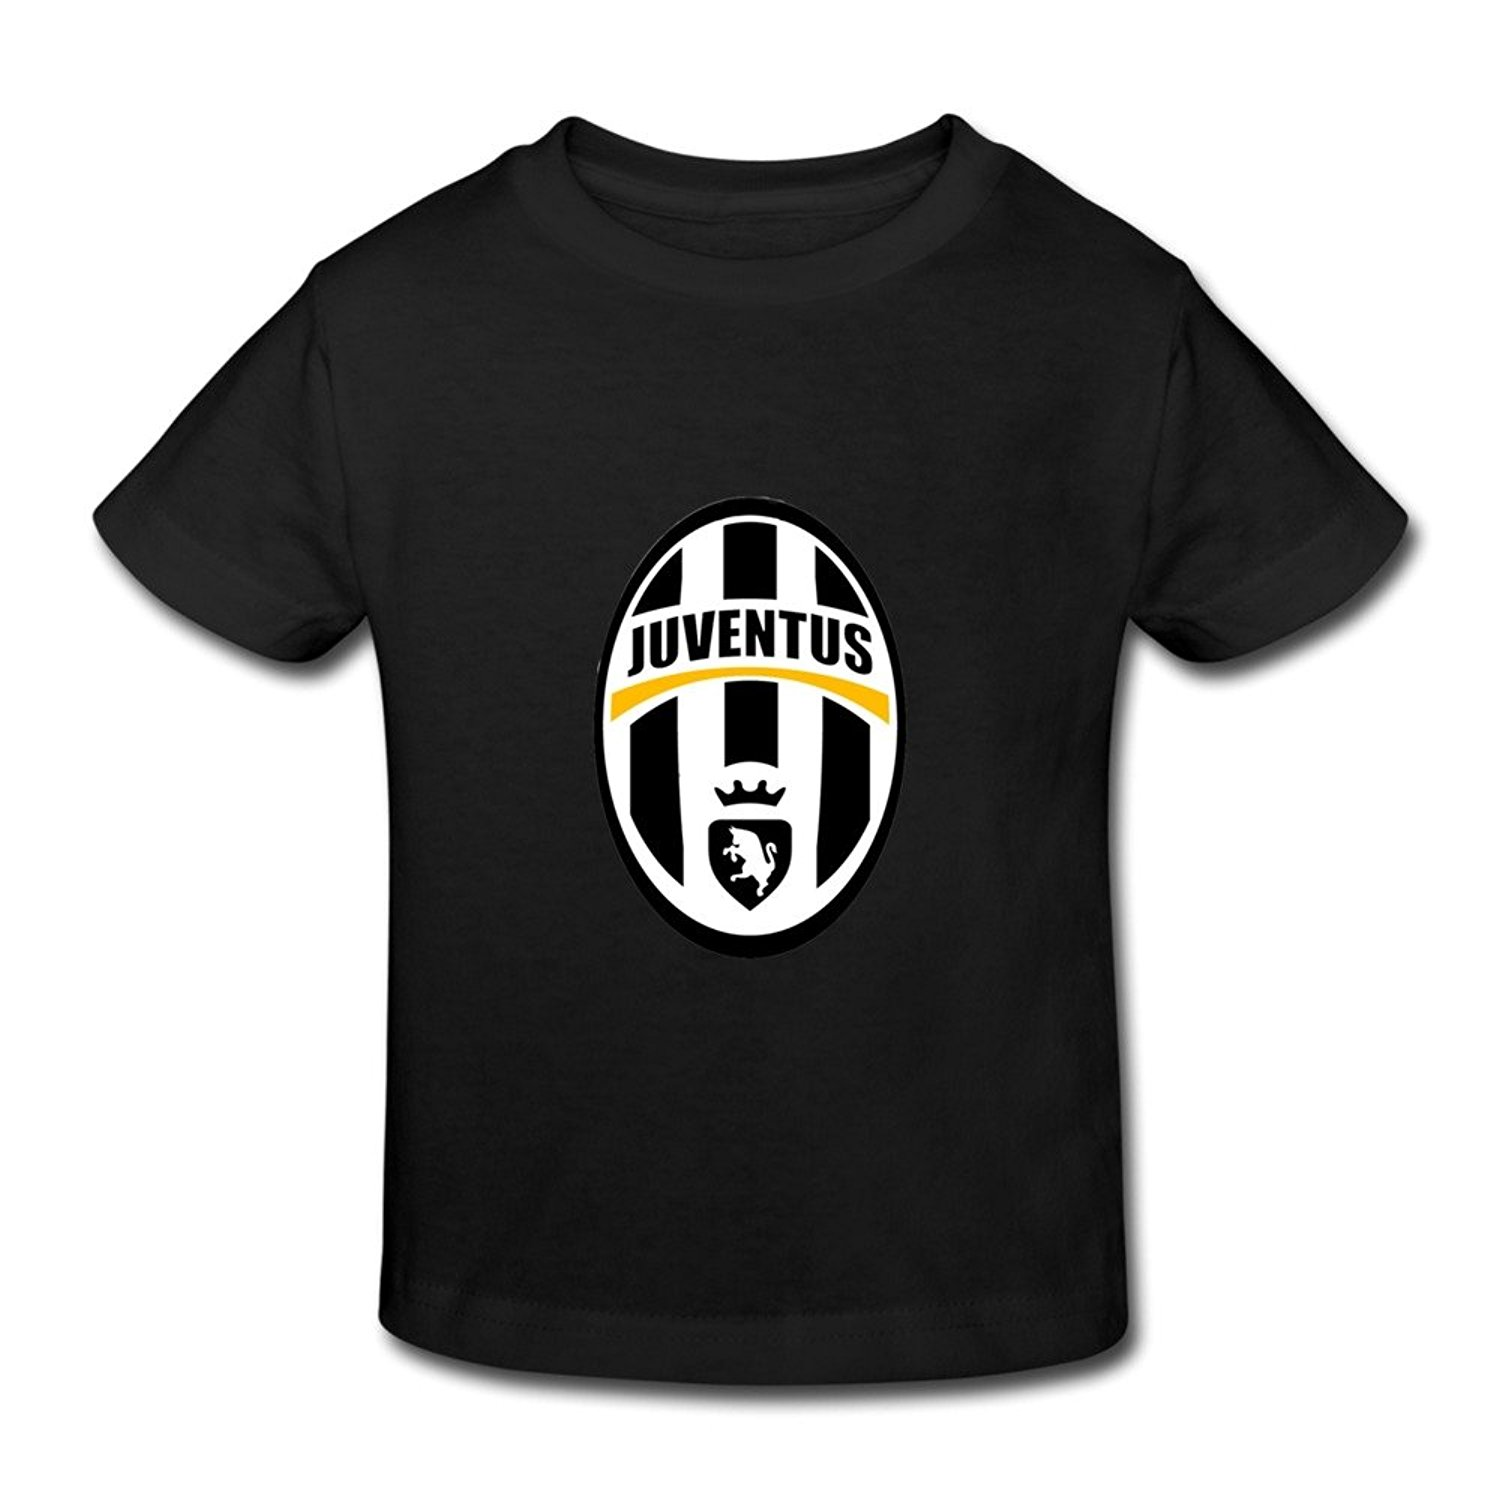 Get Quotations · Little Boys And Girls Cool Juventus Cotton Tee Shirt 5-6  Toddler Black 9b366dbed0e